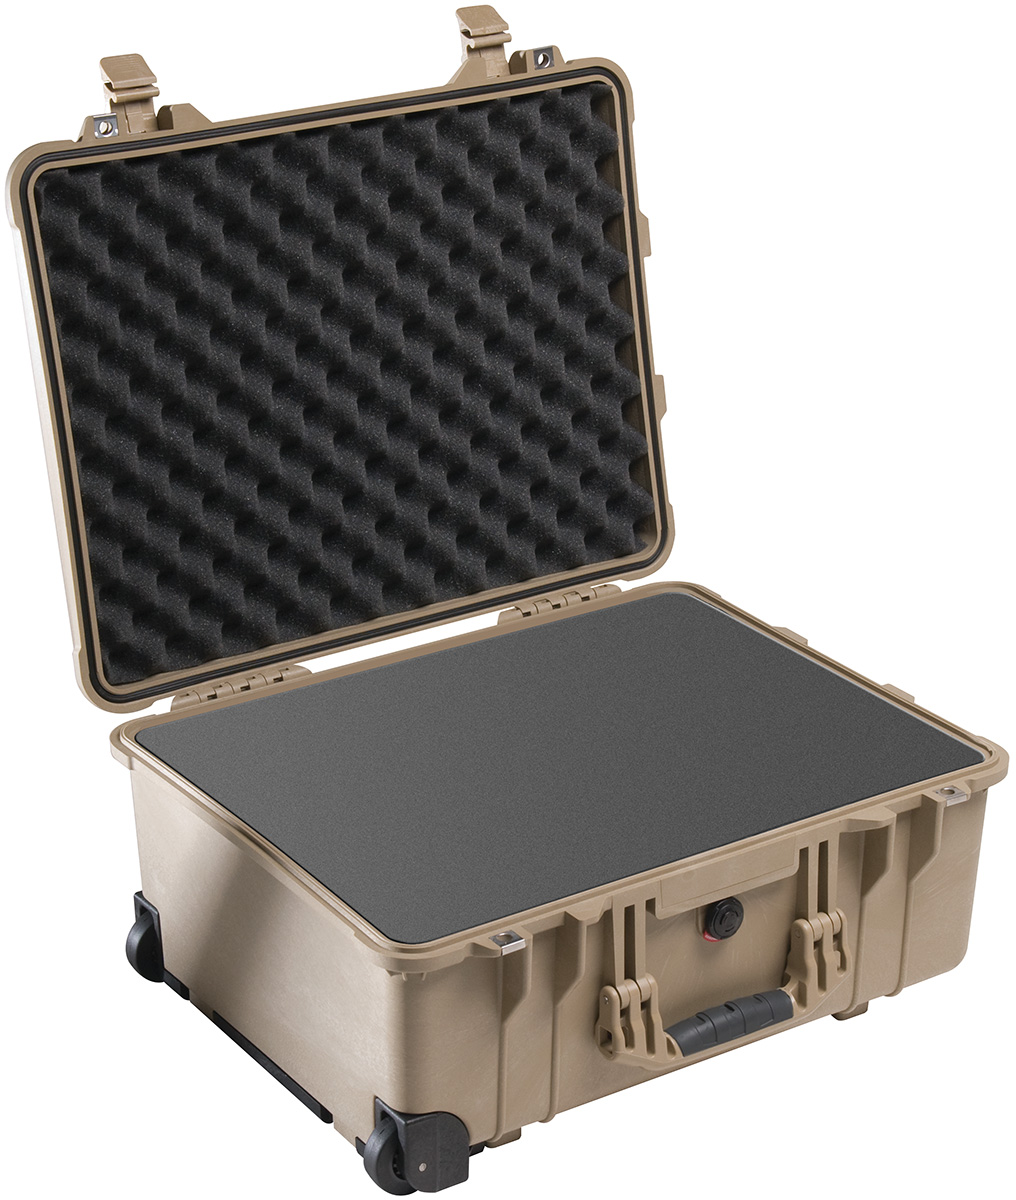 pelican usa made hardcase rolling case